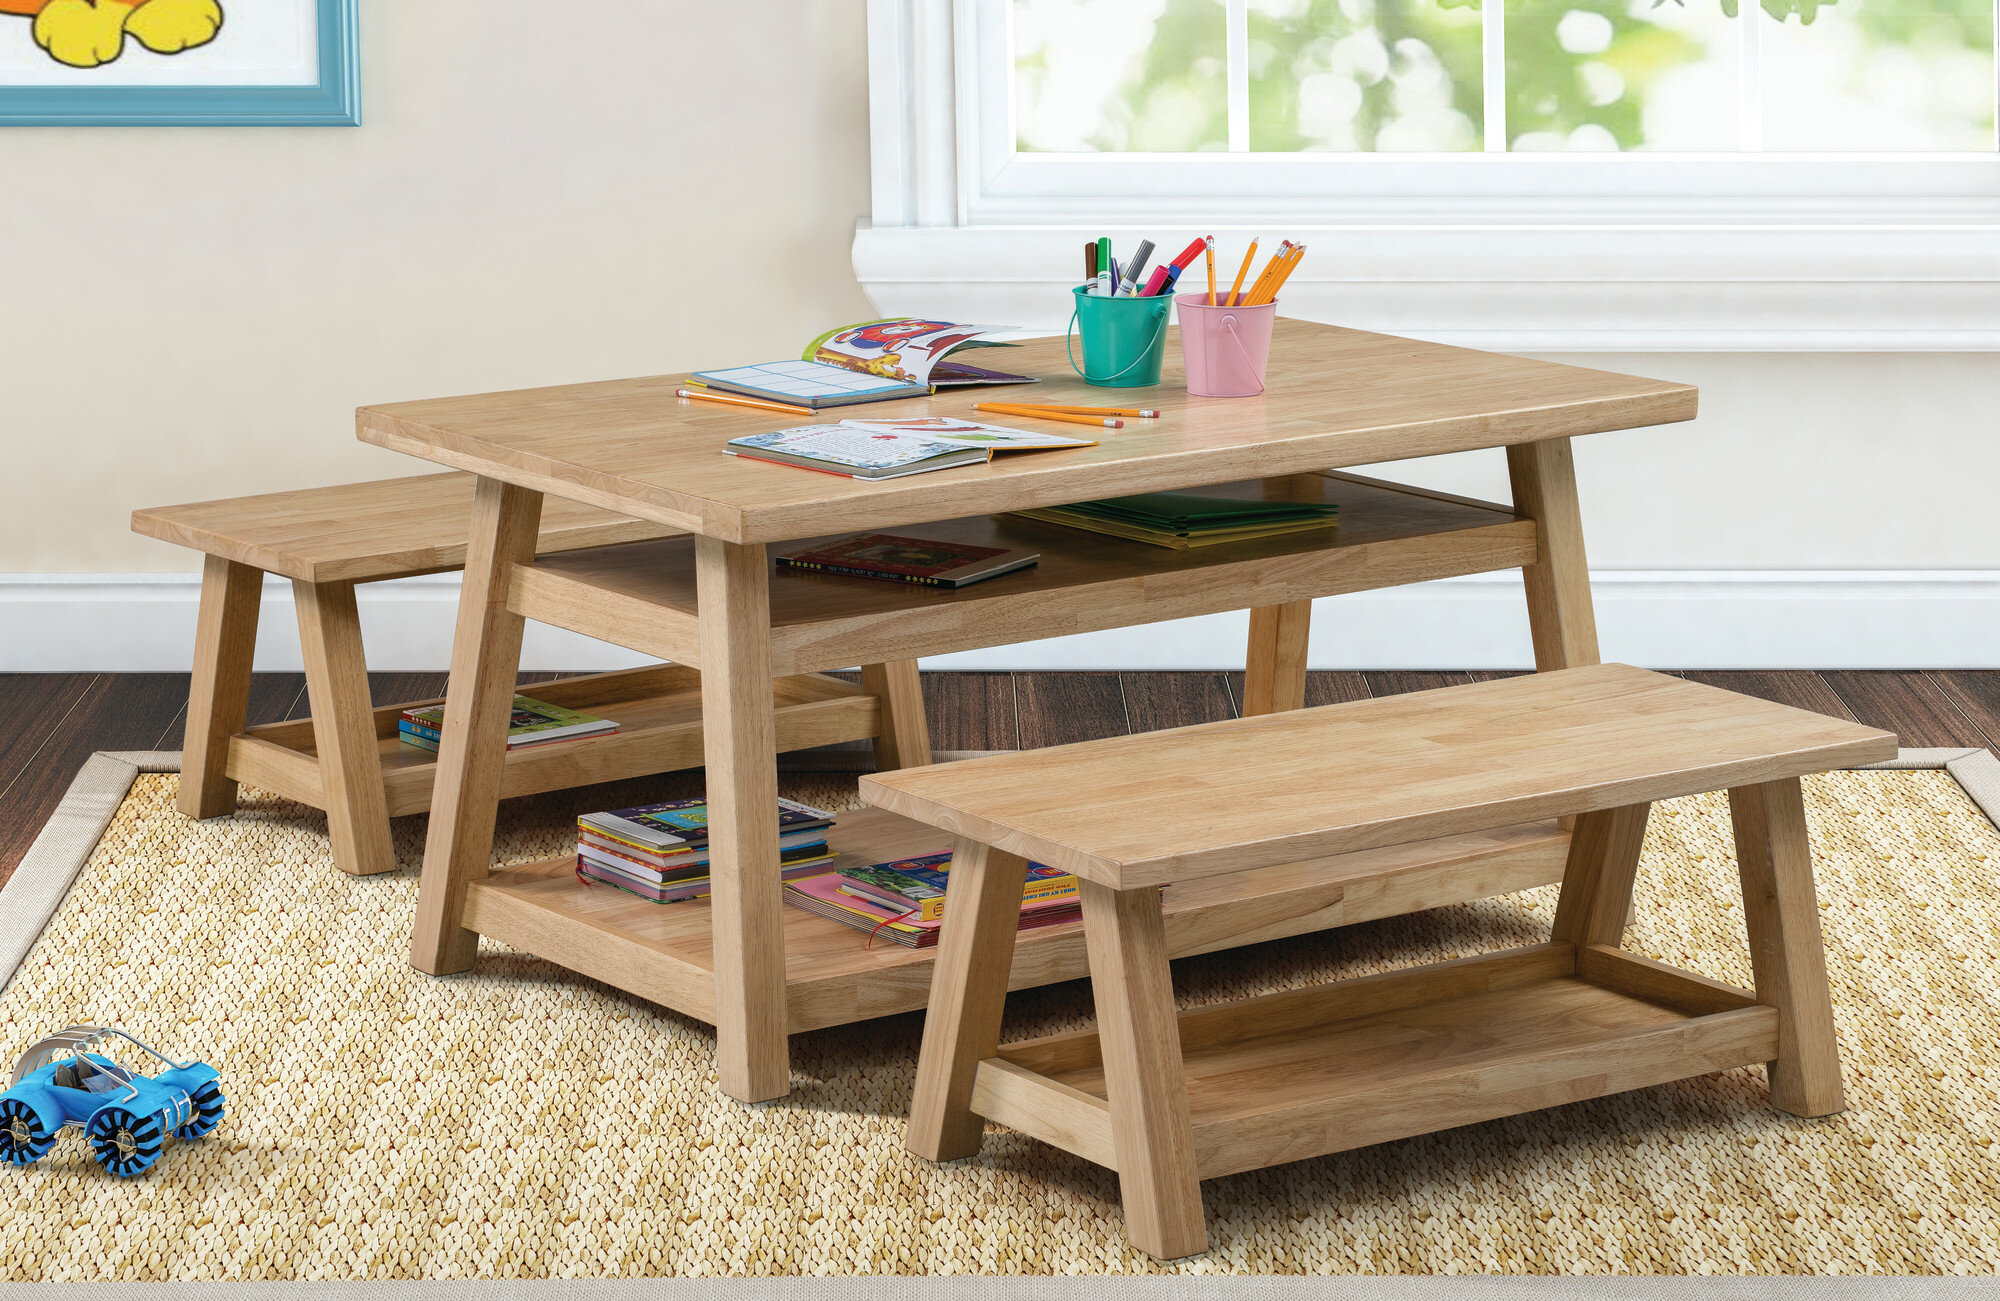 Stupendous Sit N Stash Kids 3 Piece Writing Table And Bench Set Customarchery Wood Chair Design Ideas Customarcherynet